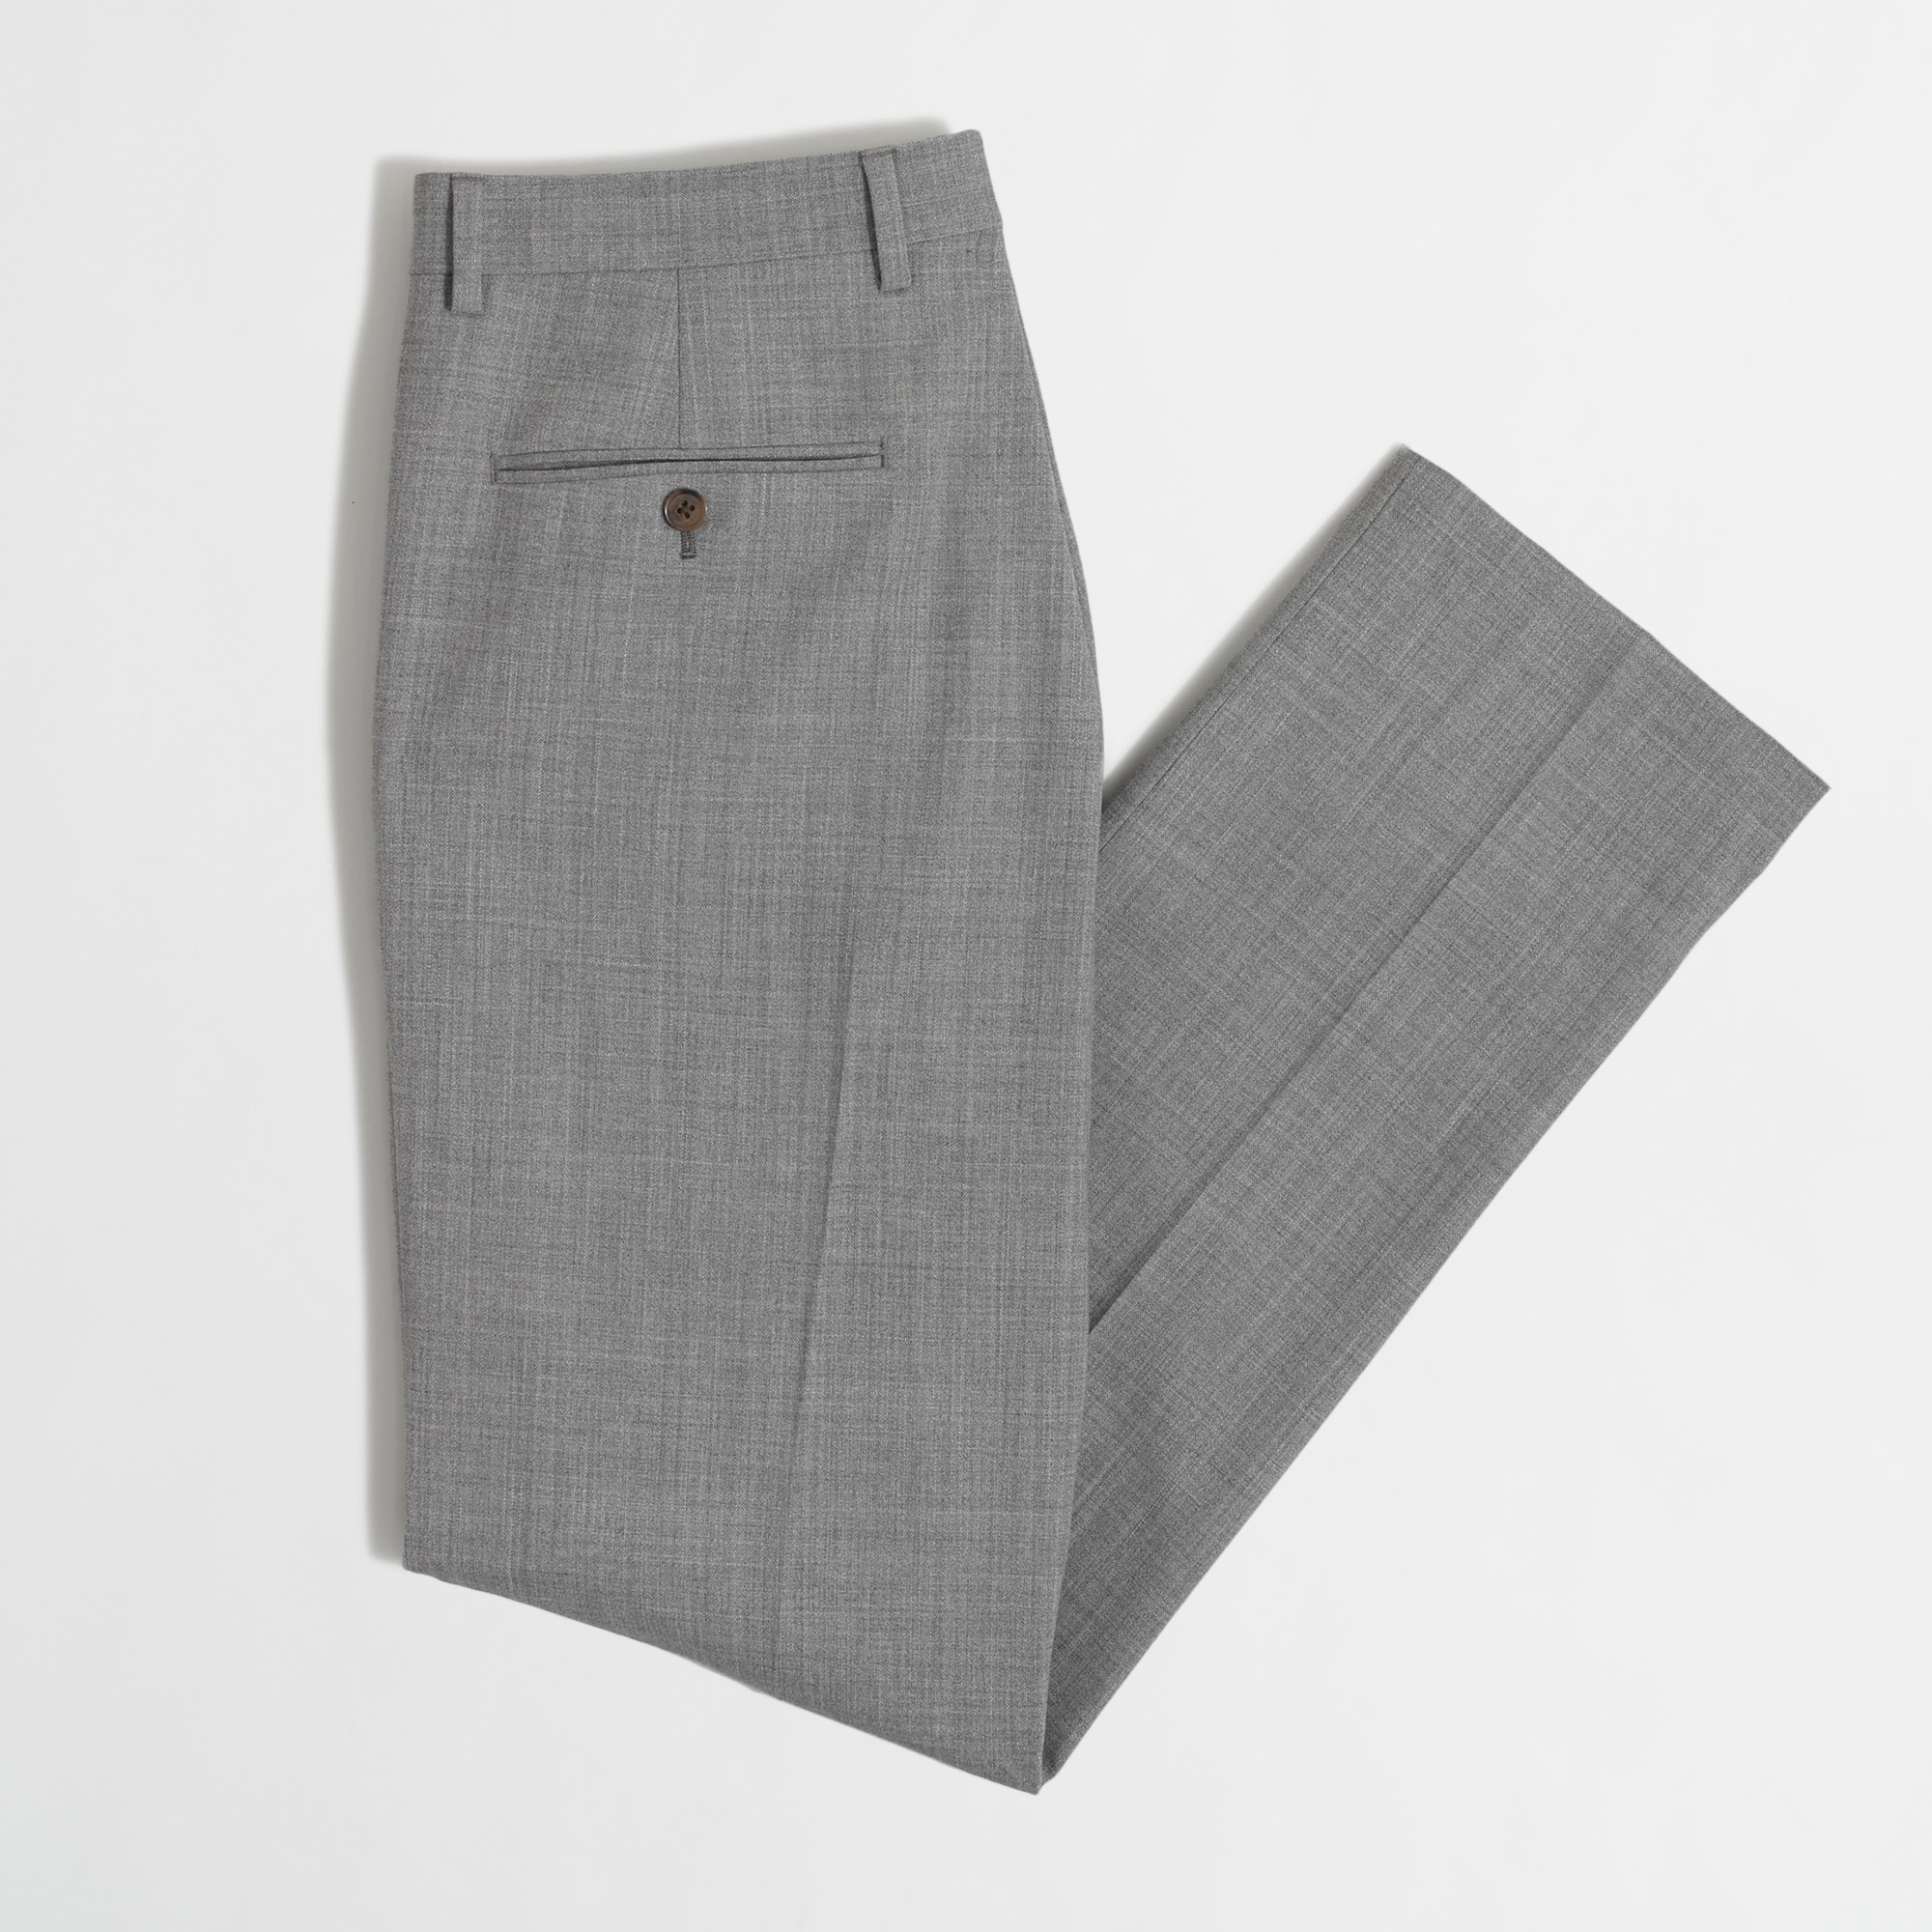 Image 5 for Classic-fit Thompson suit pant in Voyager wool